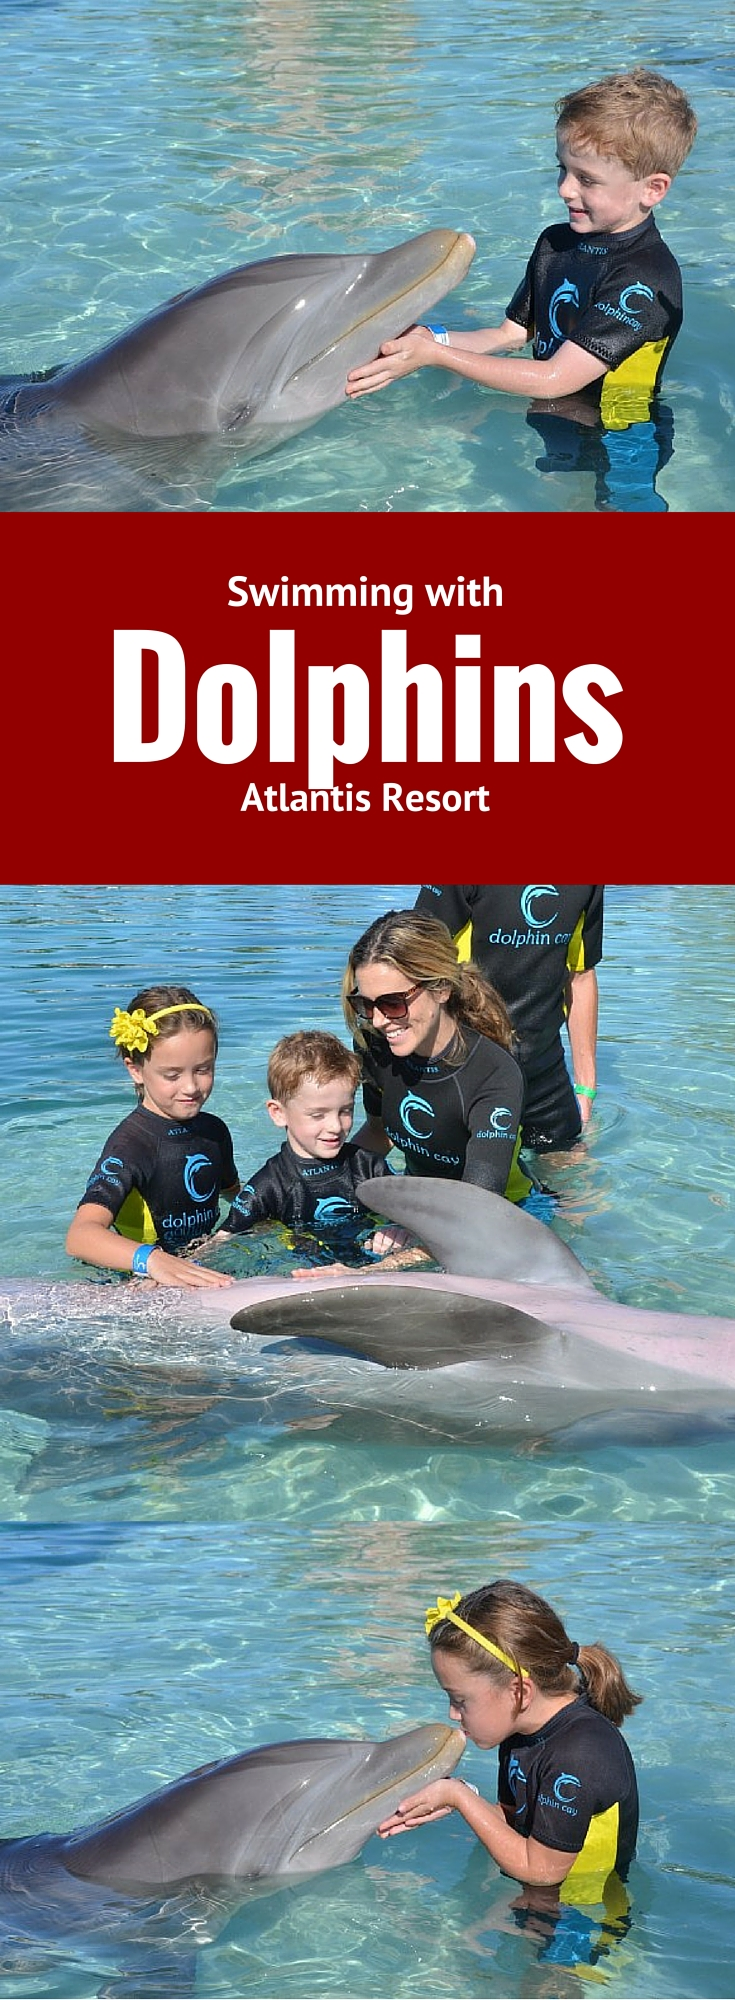 Photos, Video & Tips For Swimming With Dolphins At